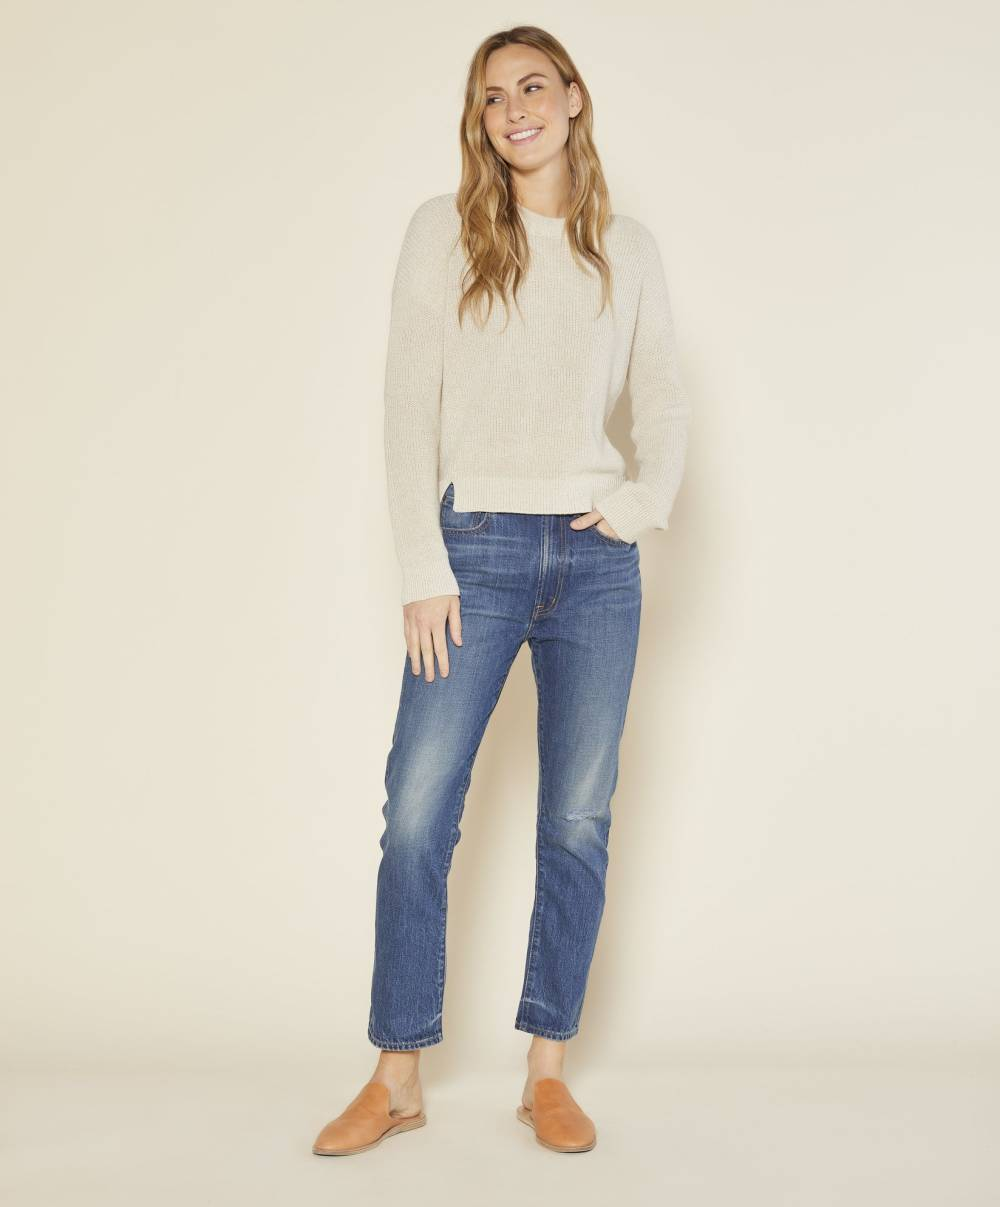 outerknown sustainable affordable knitwear label